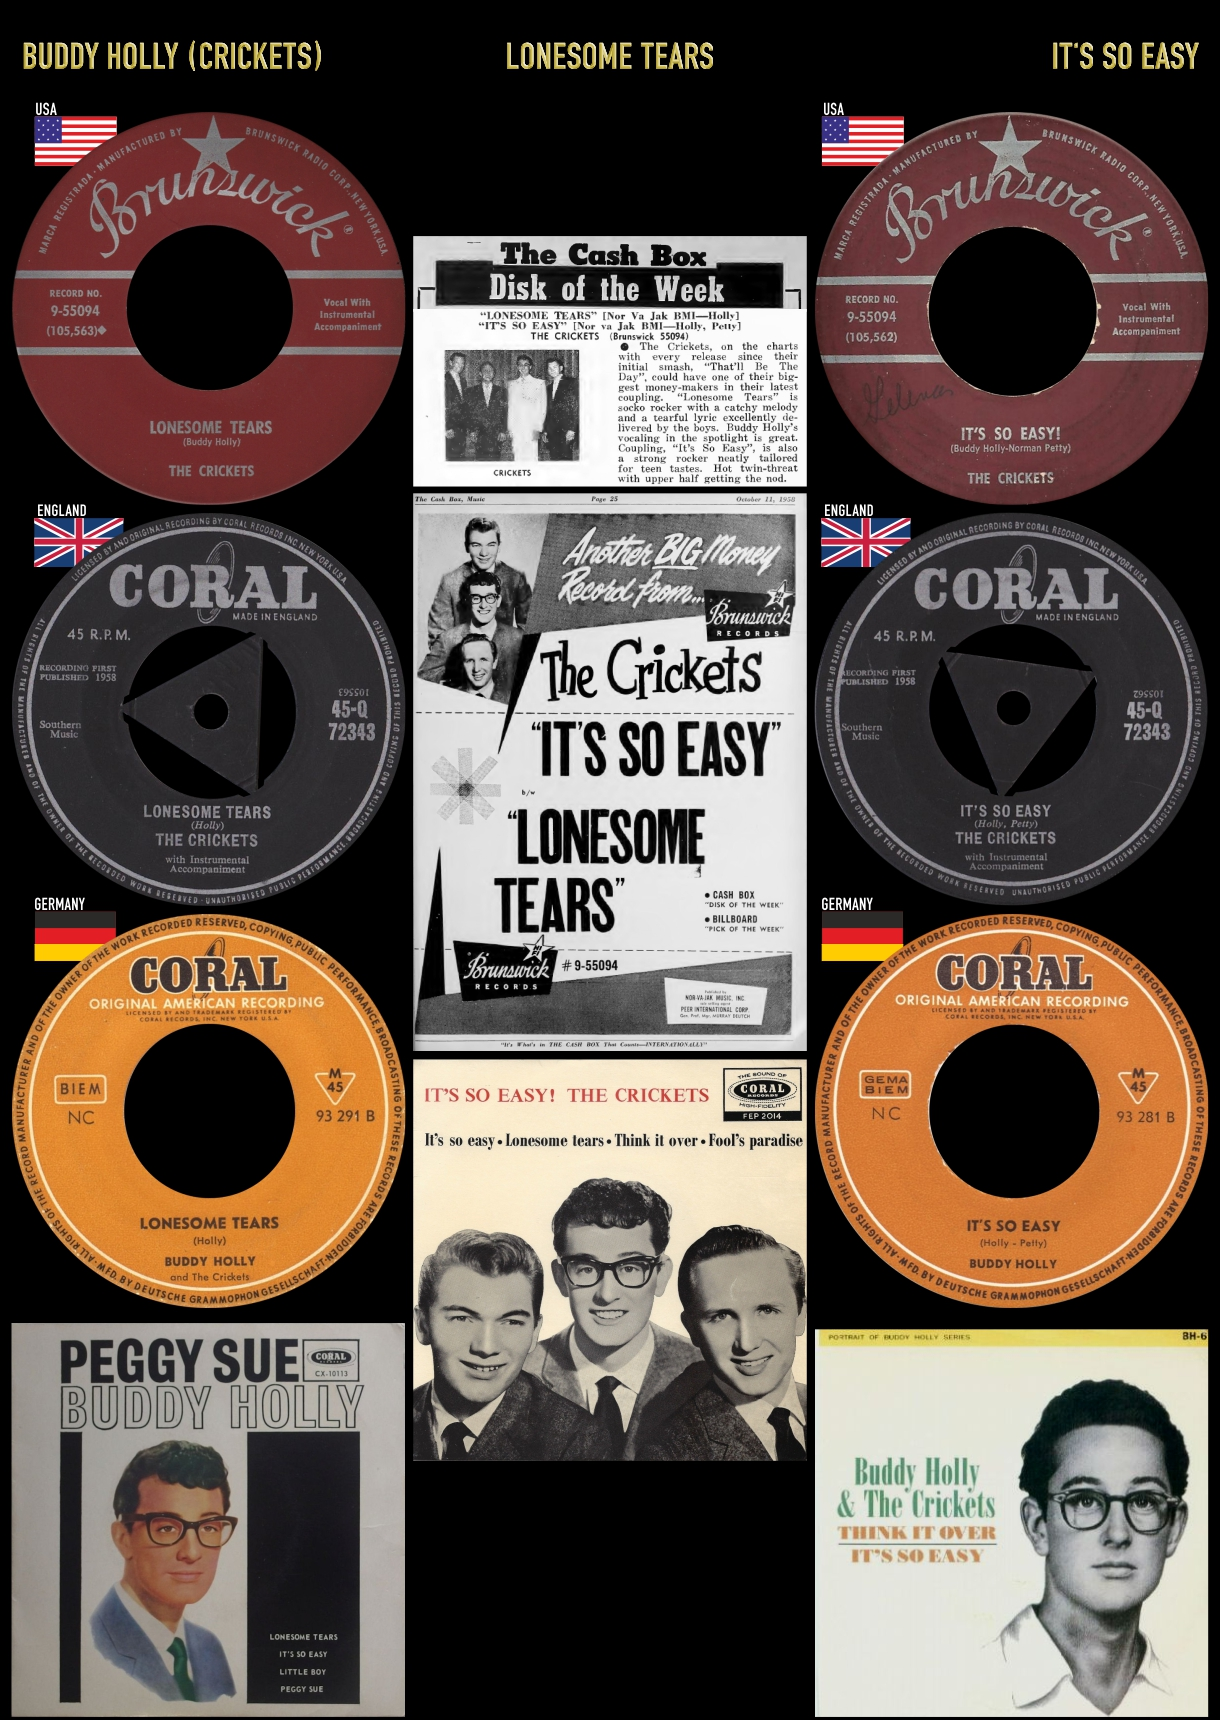 580922_Buddy Holly_It's So Easy_Lonesome Tears